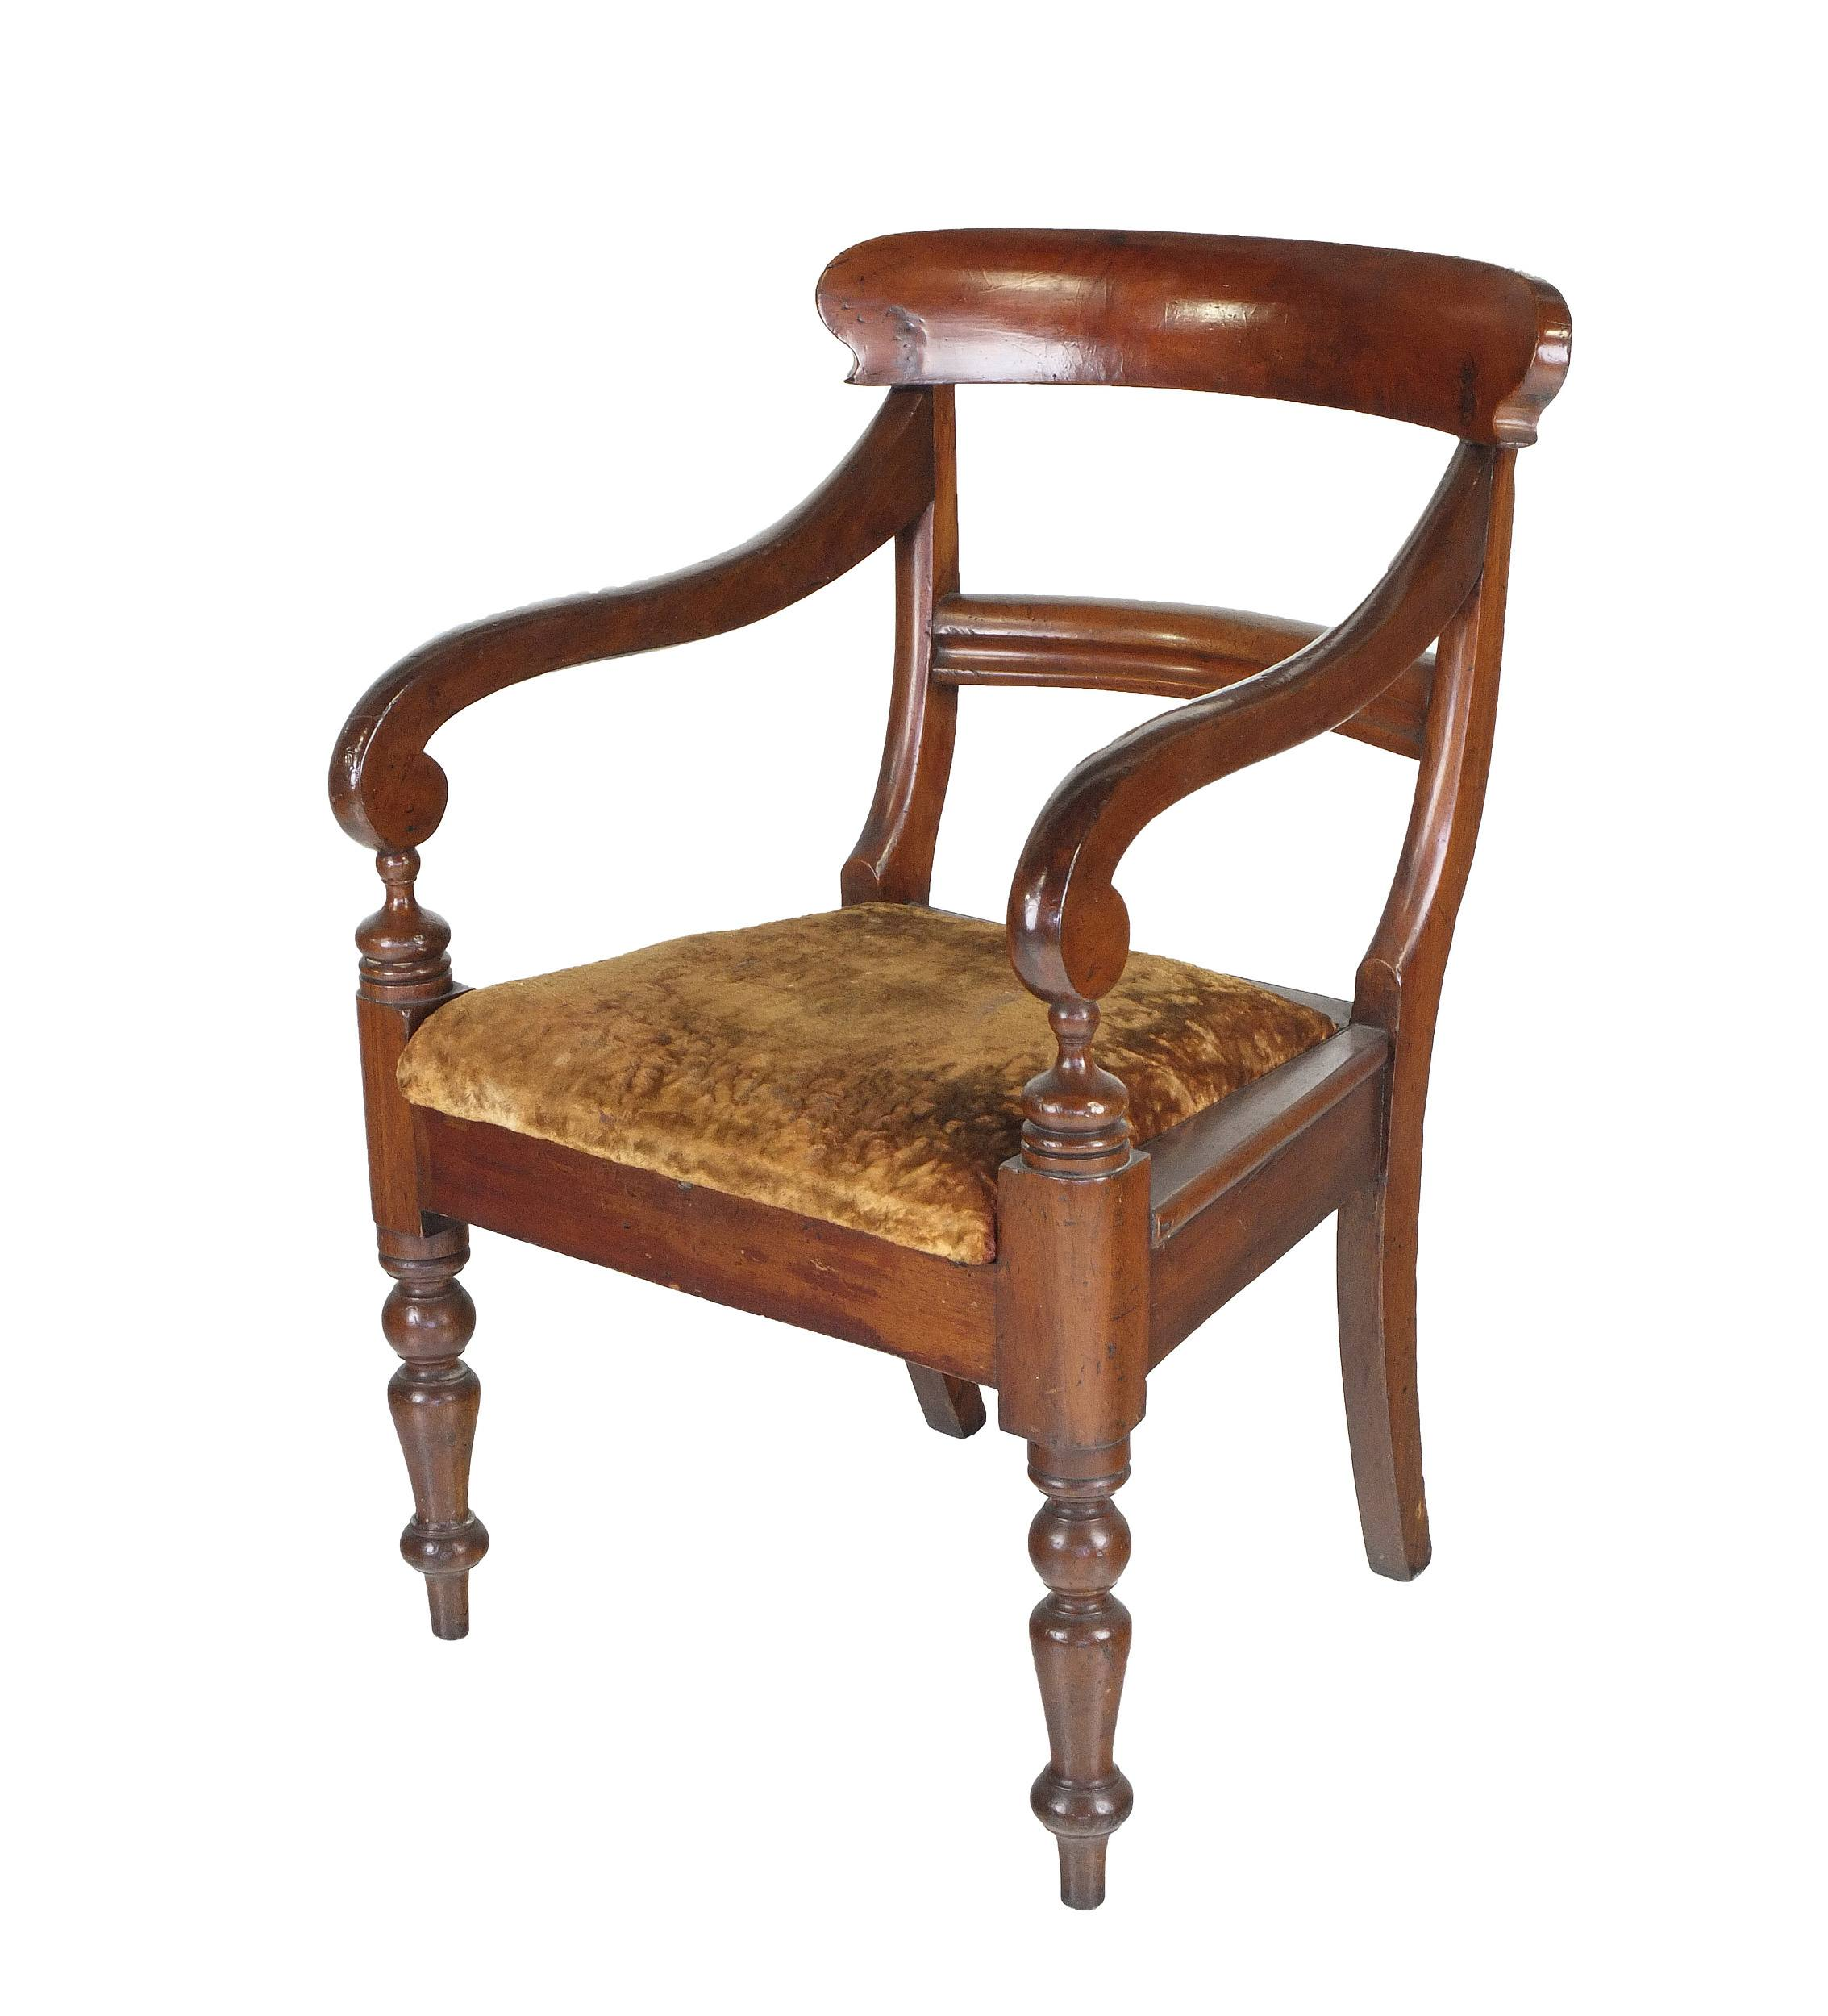 'Australian Cedar Carver Chair, Third Quarter of the 19th Century'